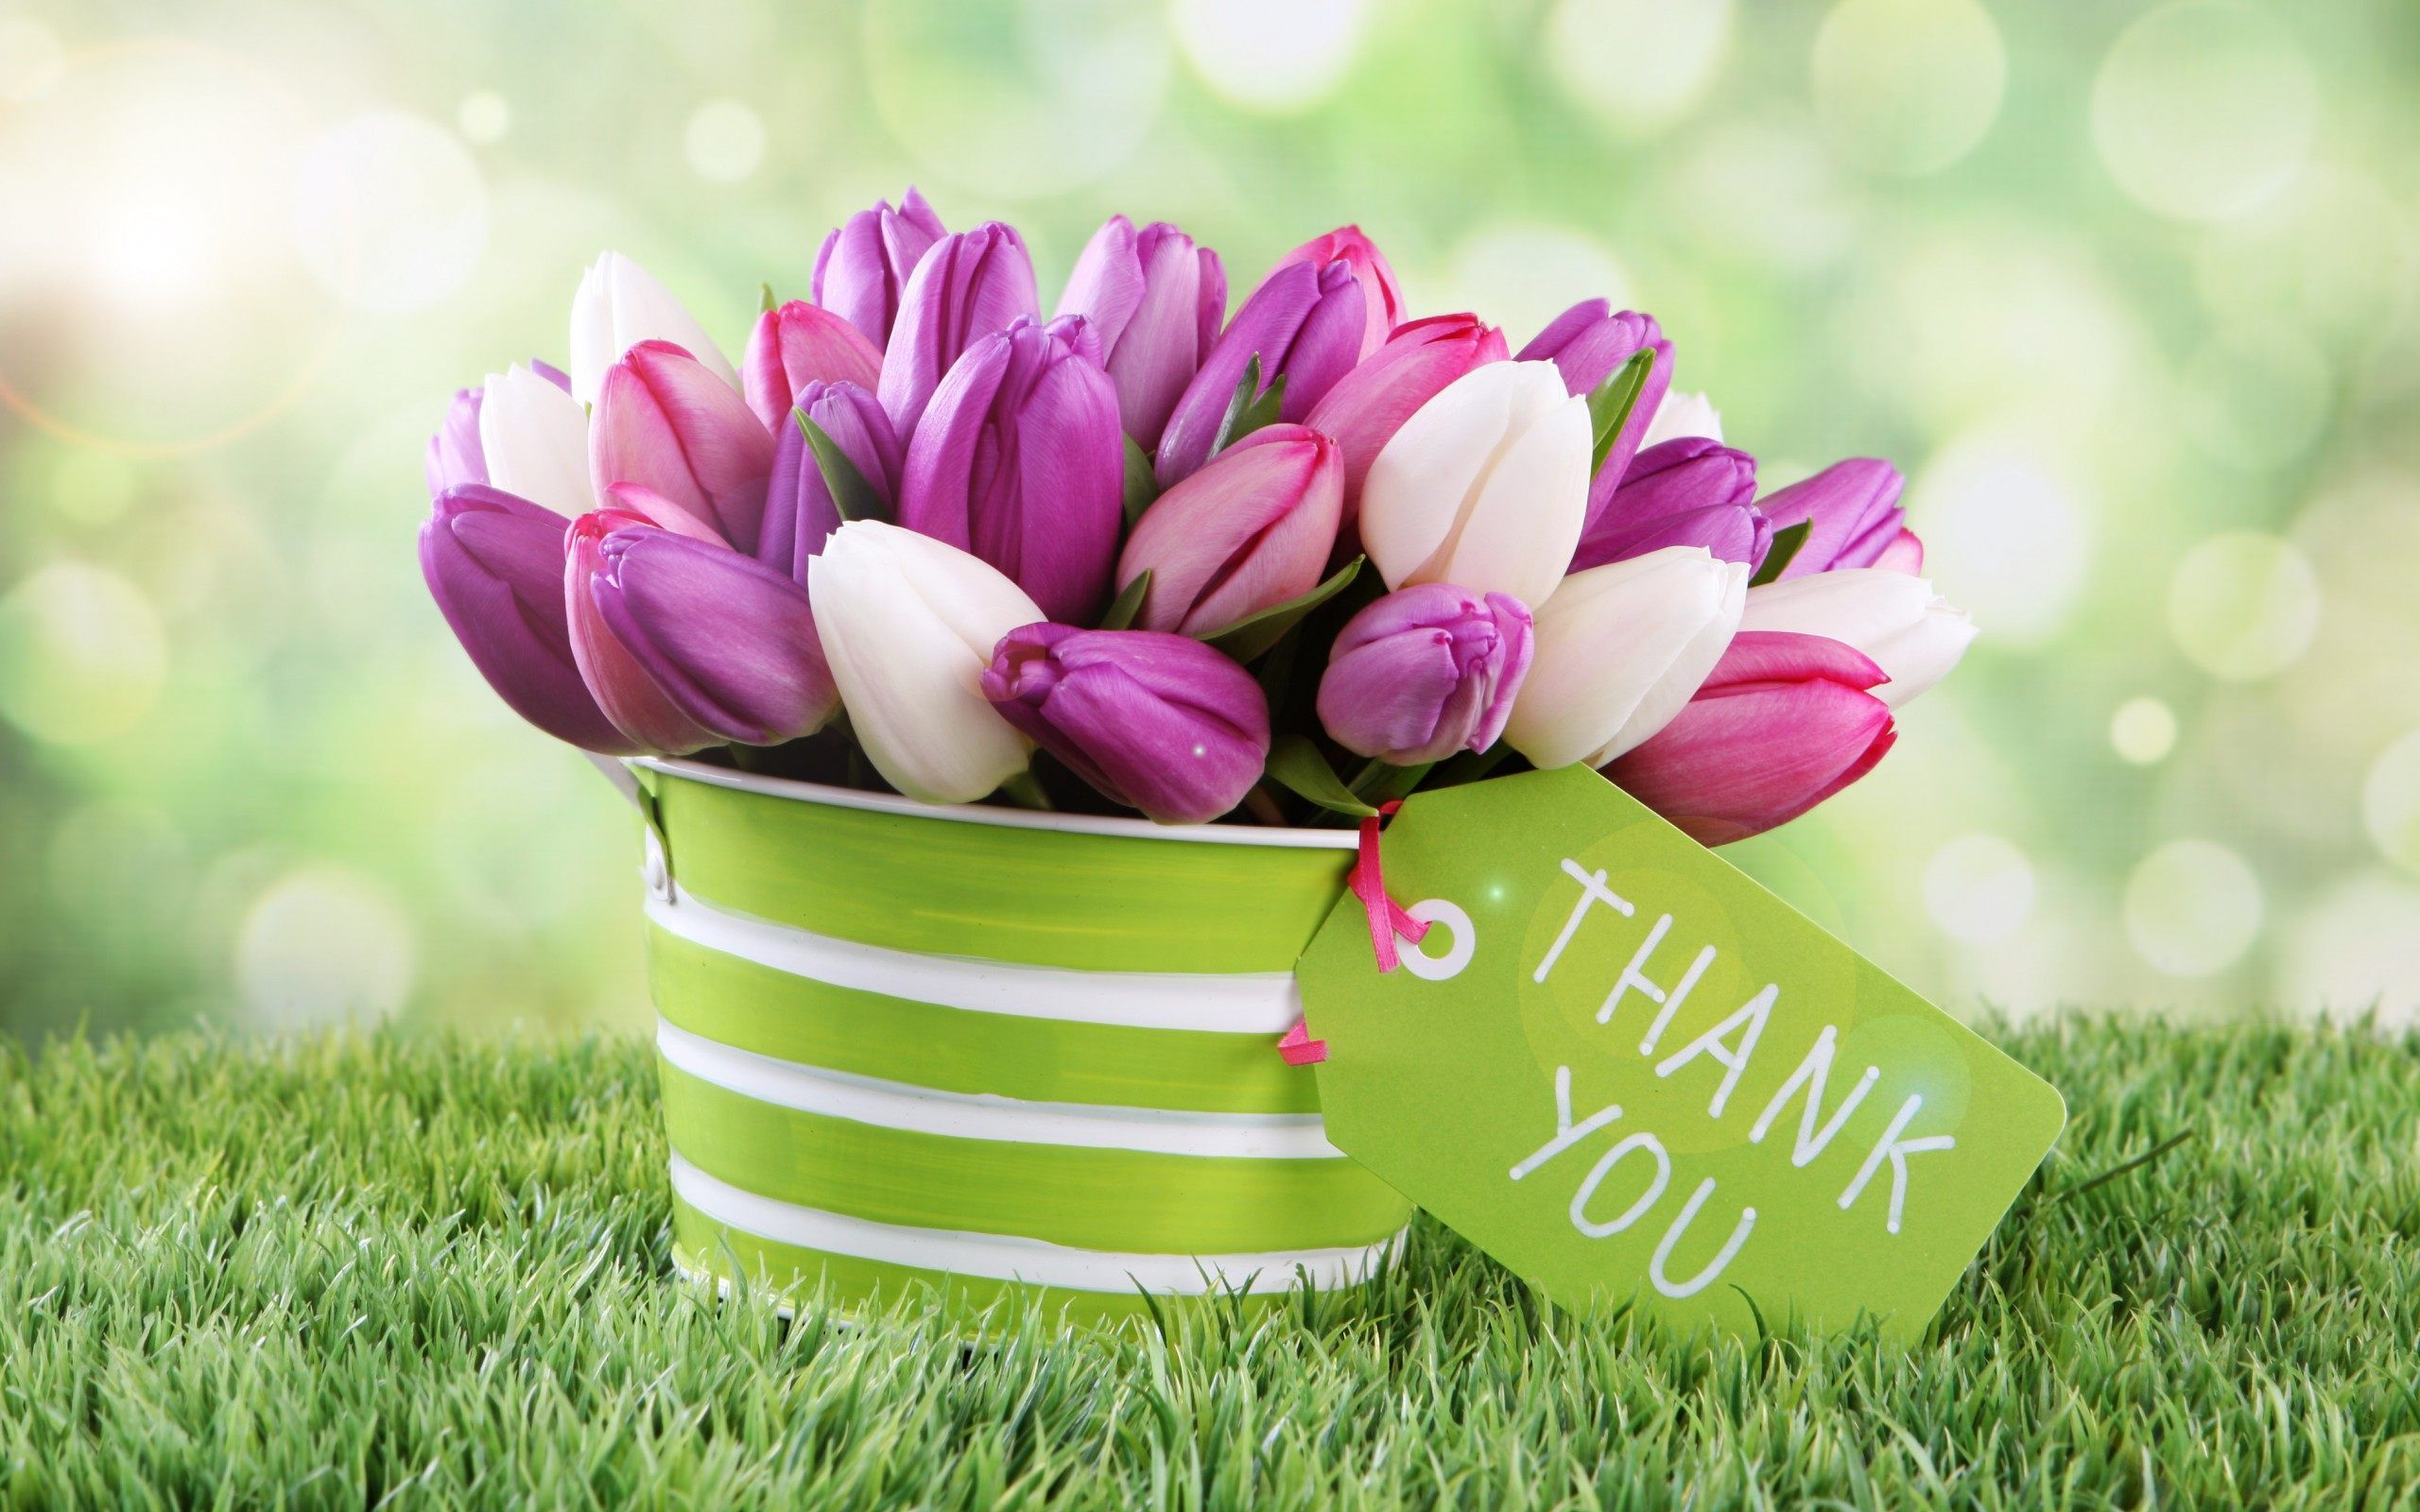 Images Of Thank You Flowers Wallpaper Background With High Resolution 2560x1600 Px 428 71 Kb Lovely Flowers Wallpaper Thank You Flowers Flower Wallpaper